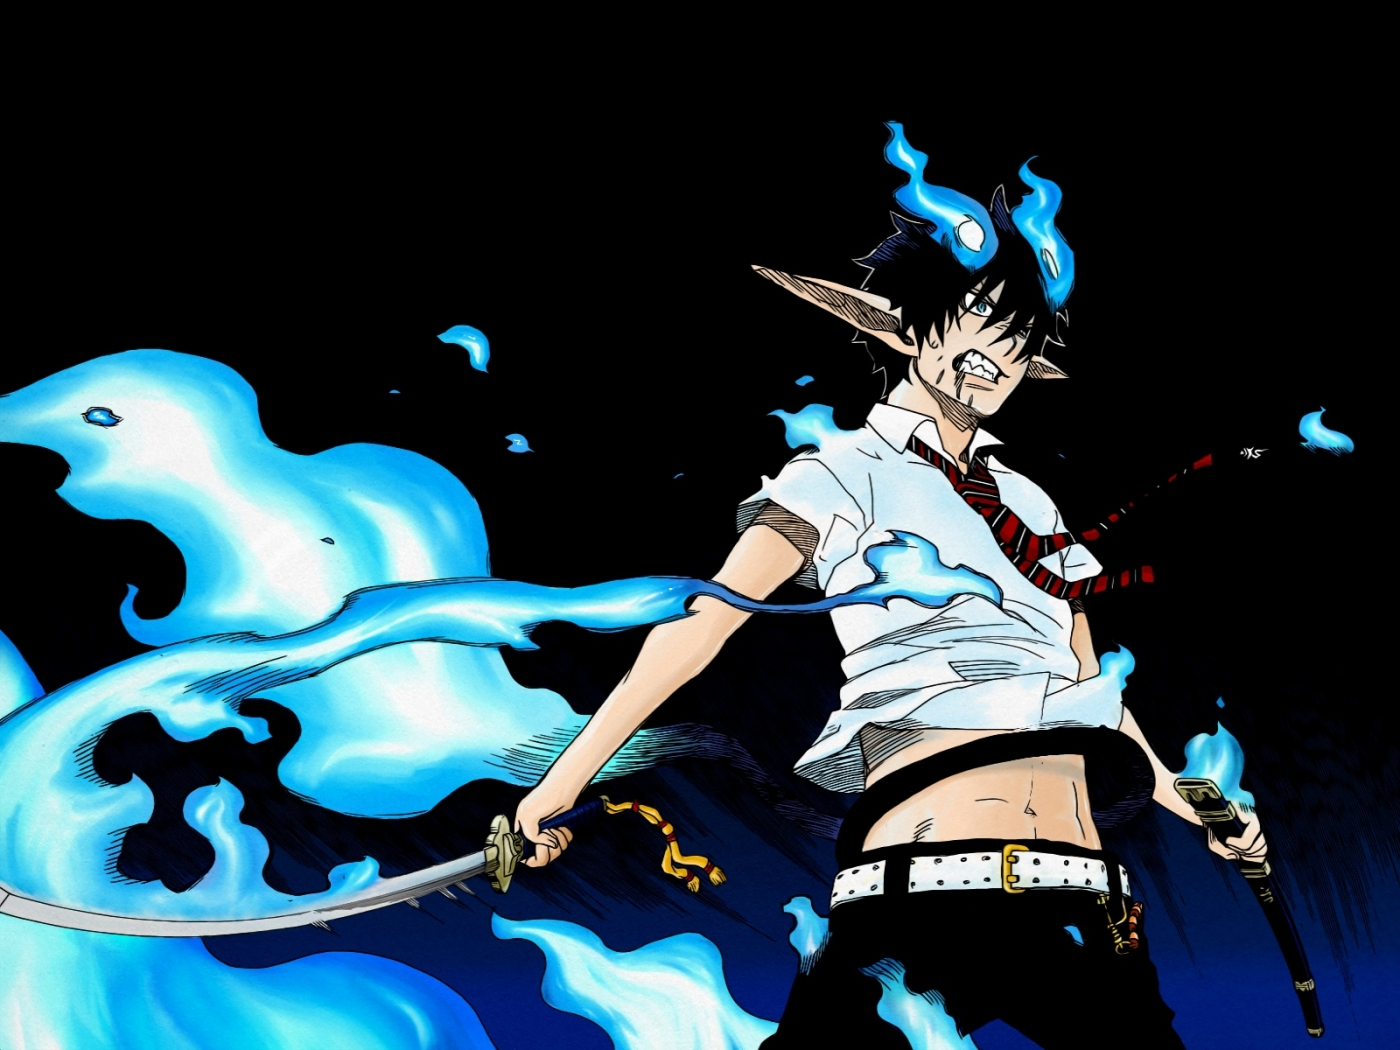 33263 download wallpaper Anime, Men screensavers and pictures for free